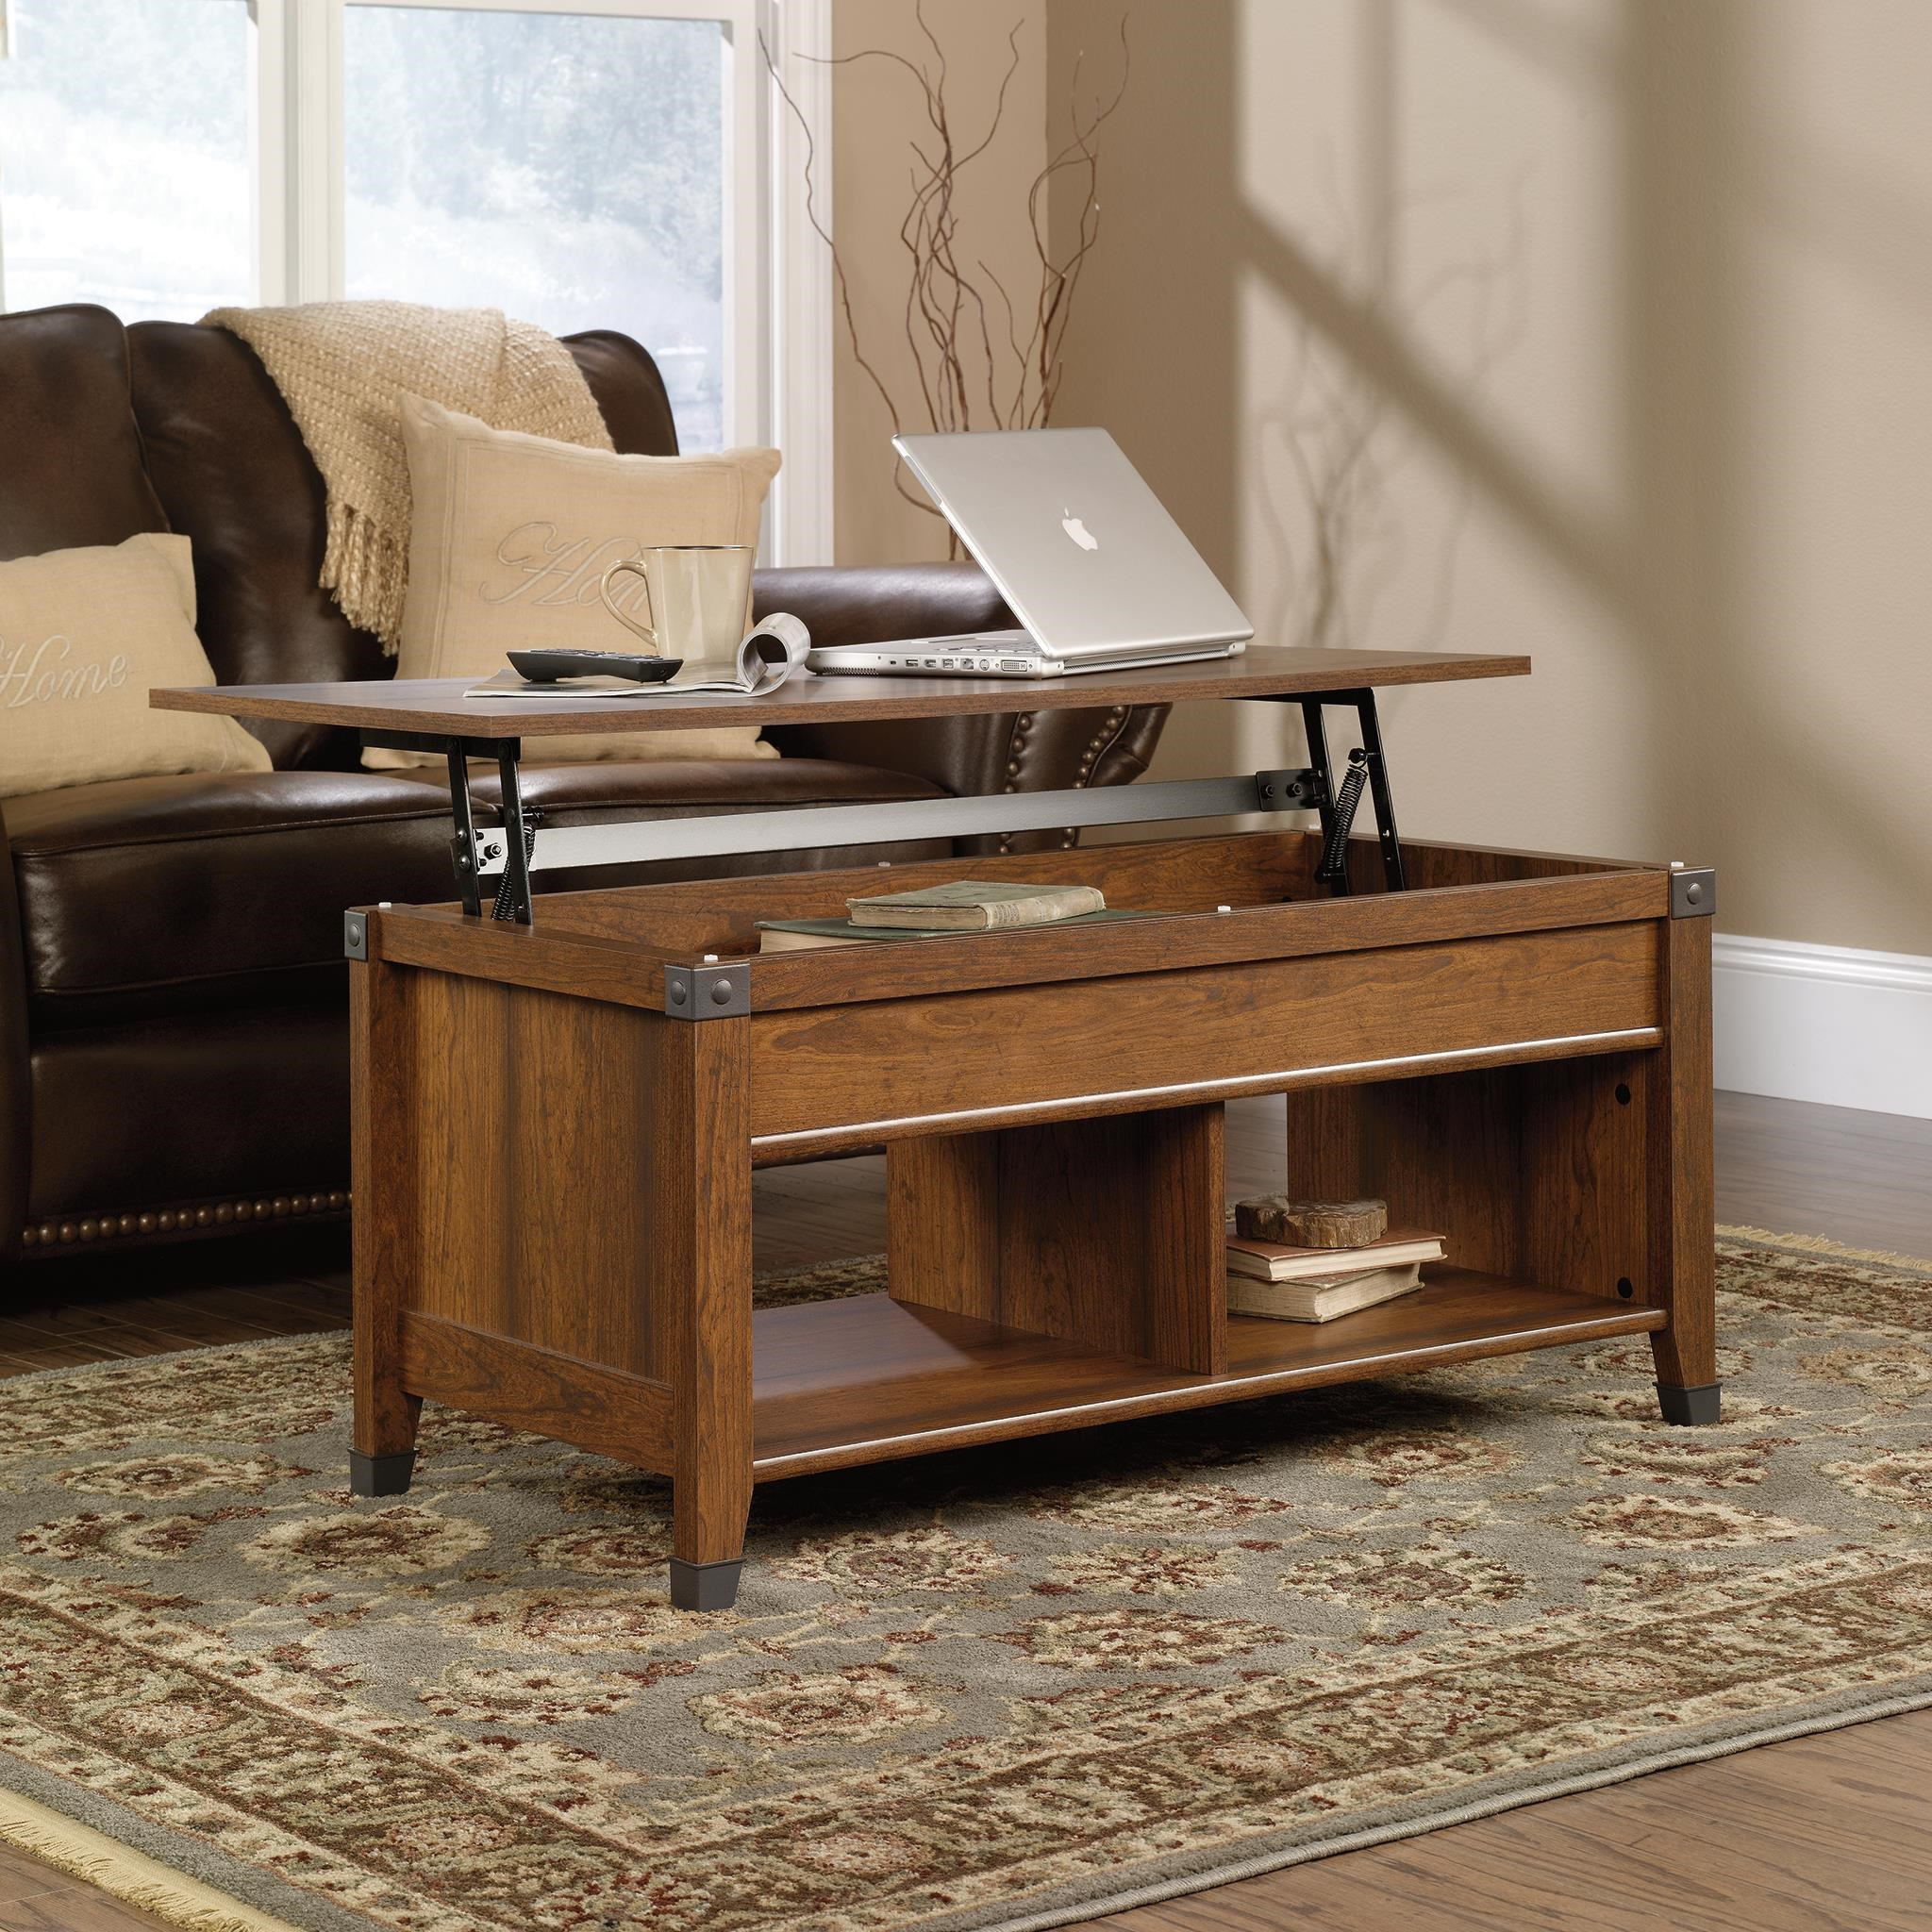 Carson Forge 414444 Lift Top Coffee Table With Plank Look And Industrial  Accents By Sauder